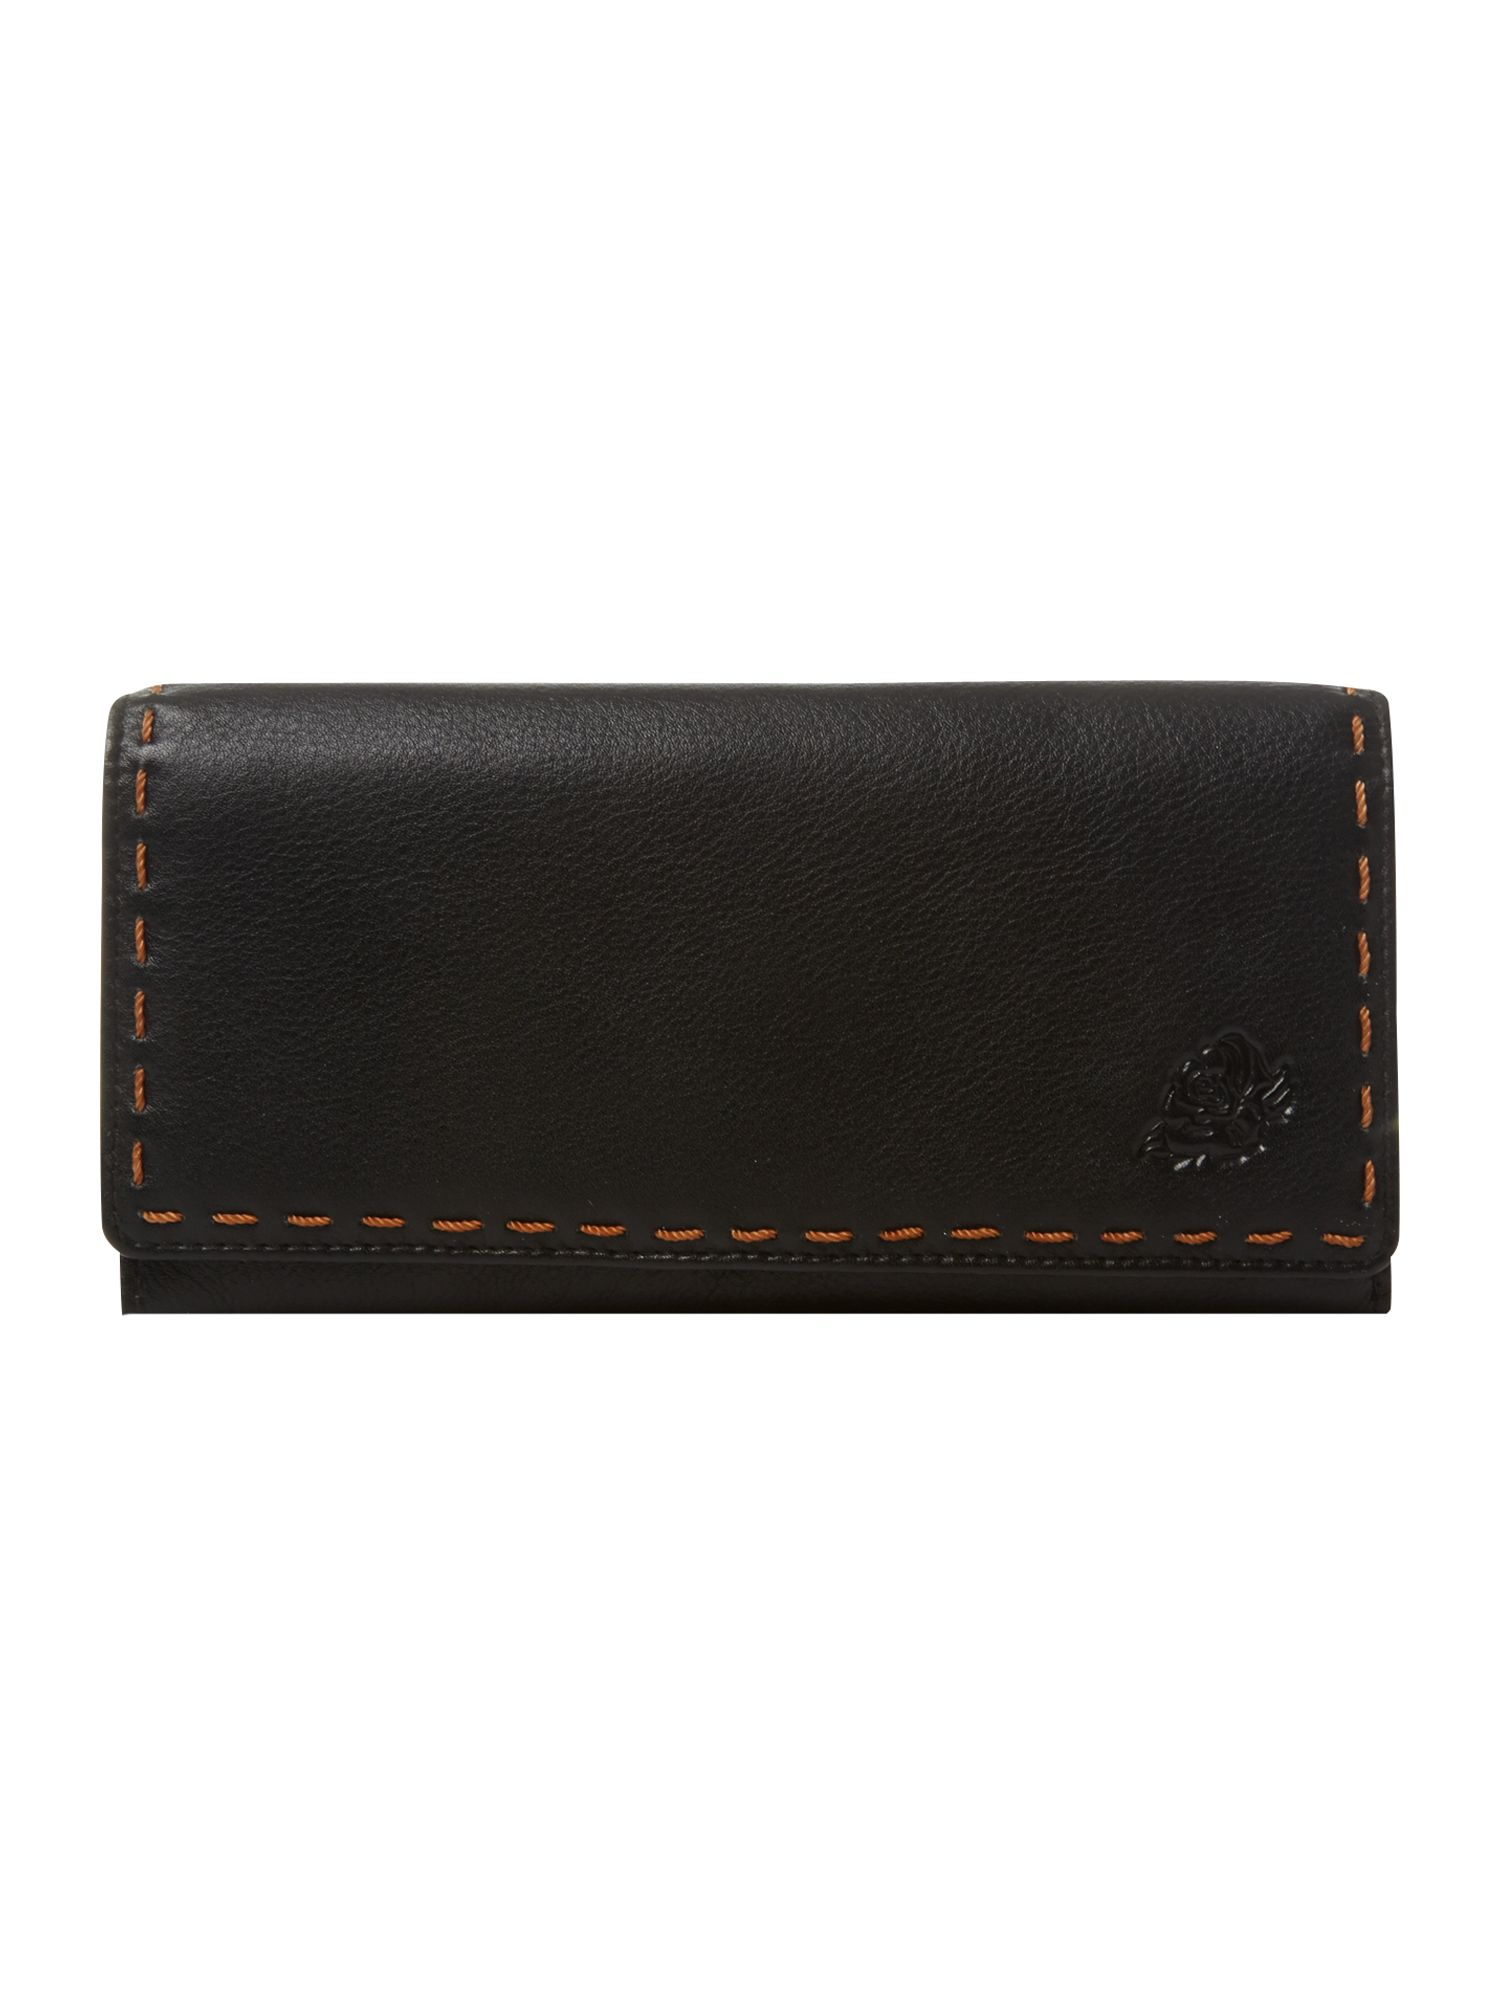 Poppy flapover purse